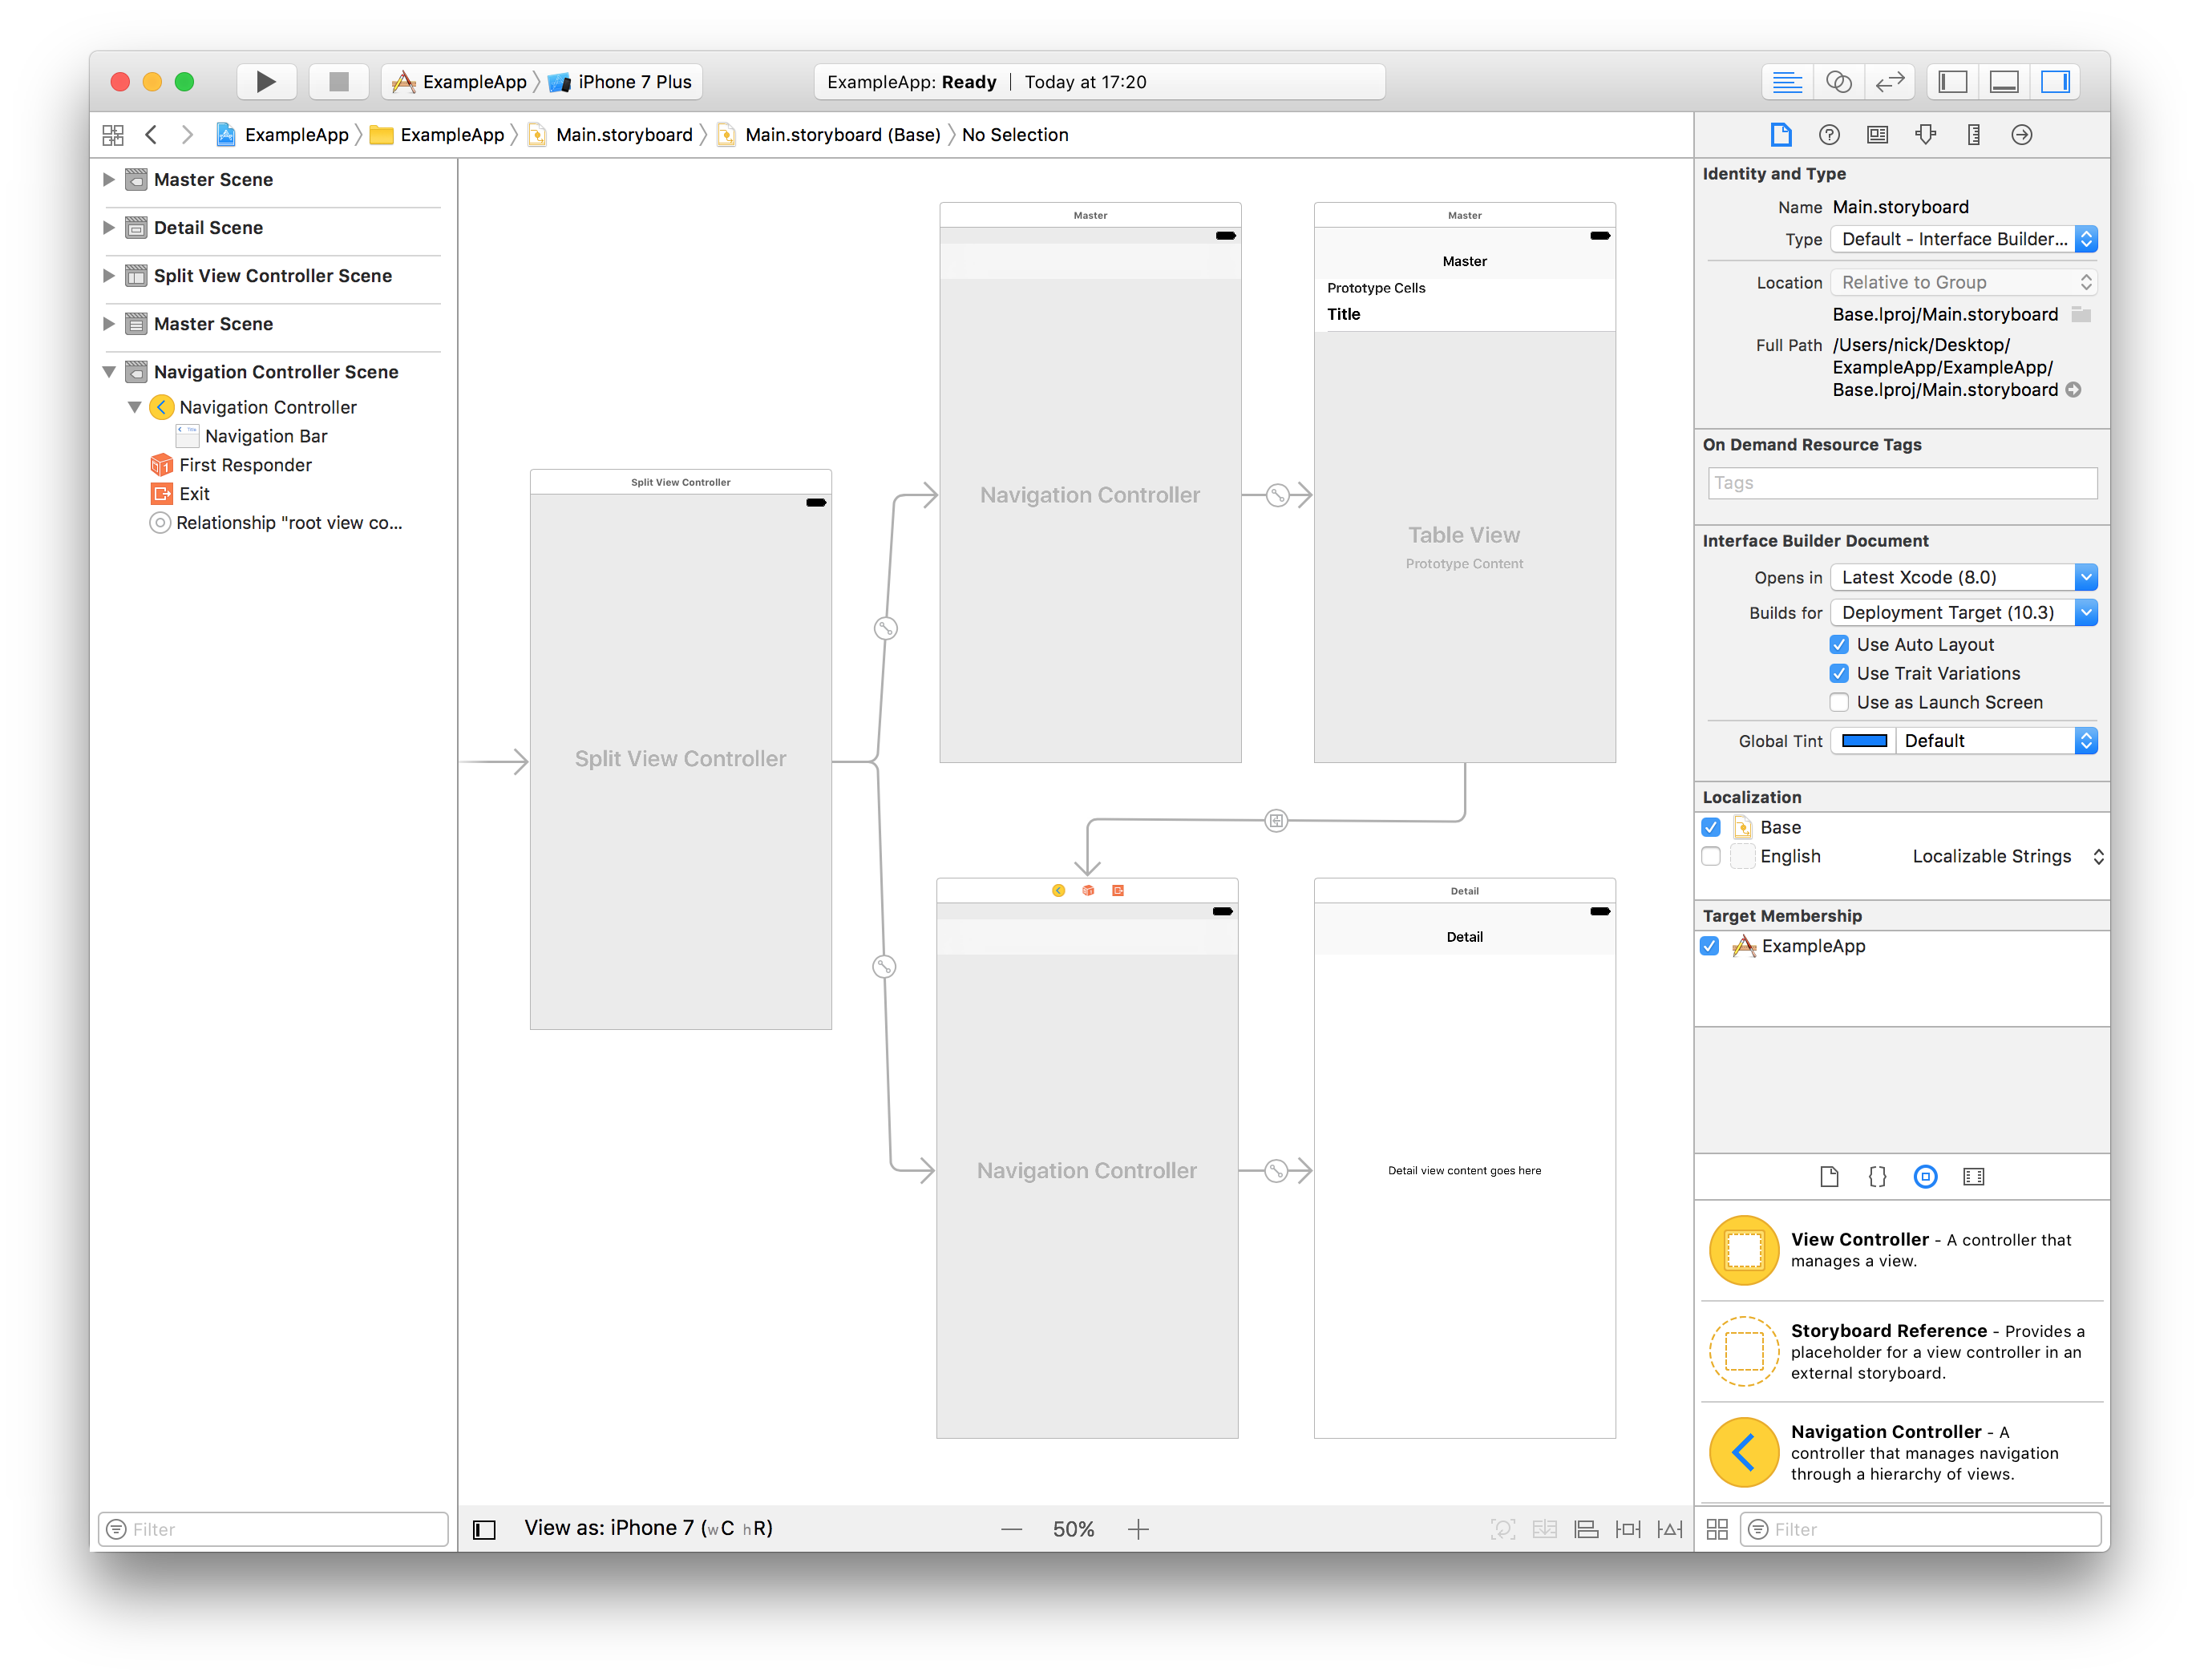 Apple's Interface Builder